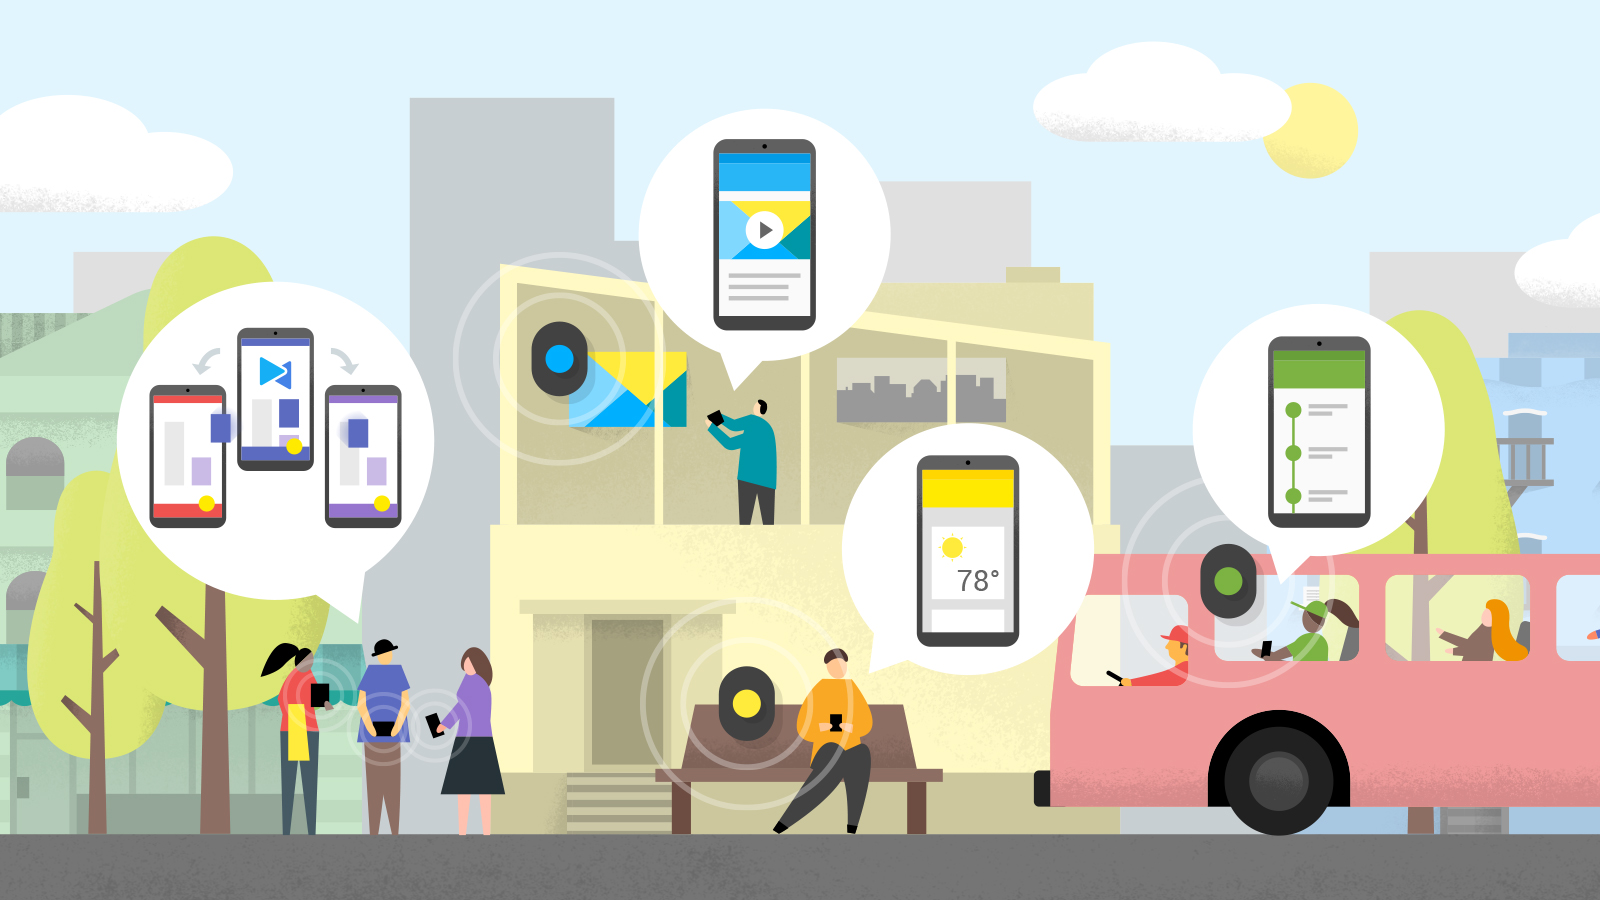 Google Developers Blog: Lighting the way with BLE beacons